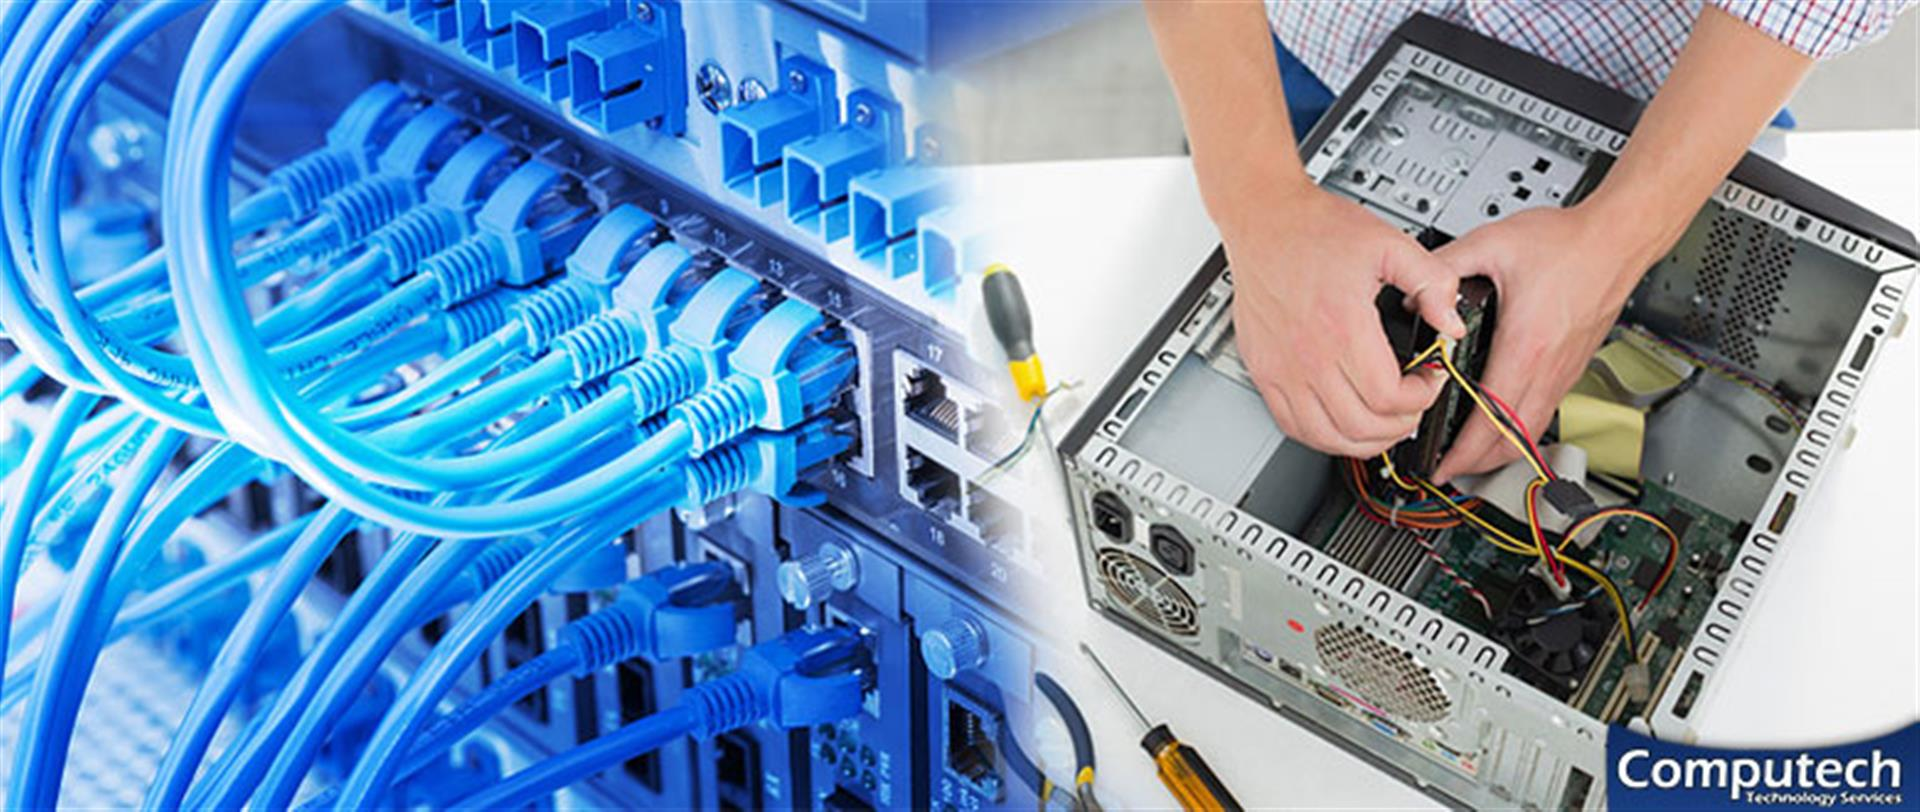 Bristol Tennessee Onsite Computer PC and Printer Repair, Networking, Voice & Data Cabling Services